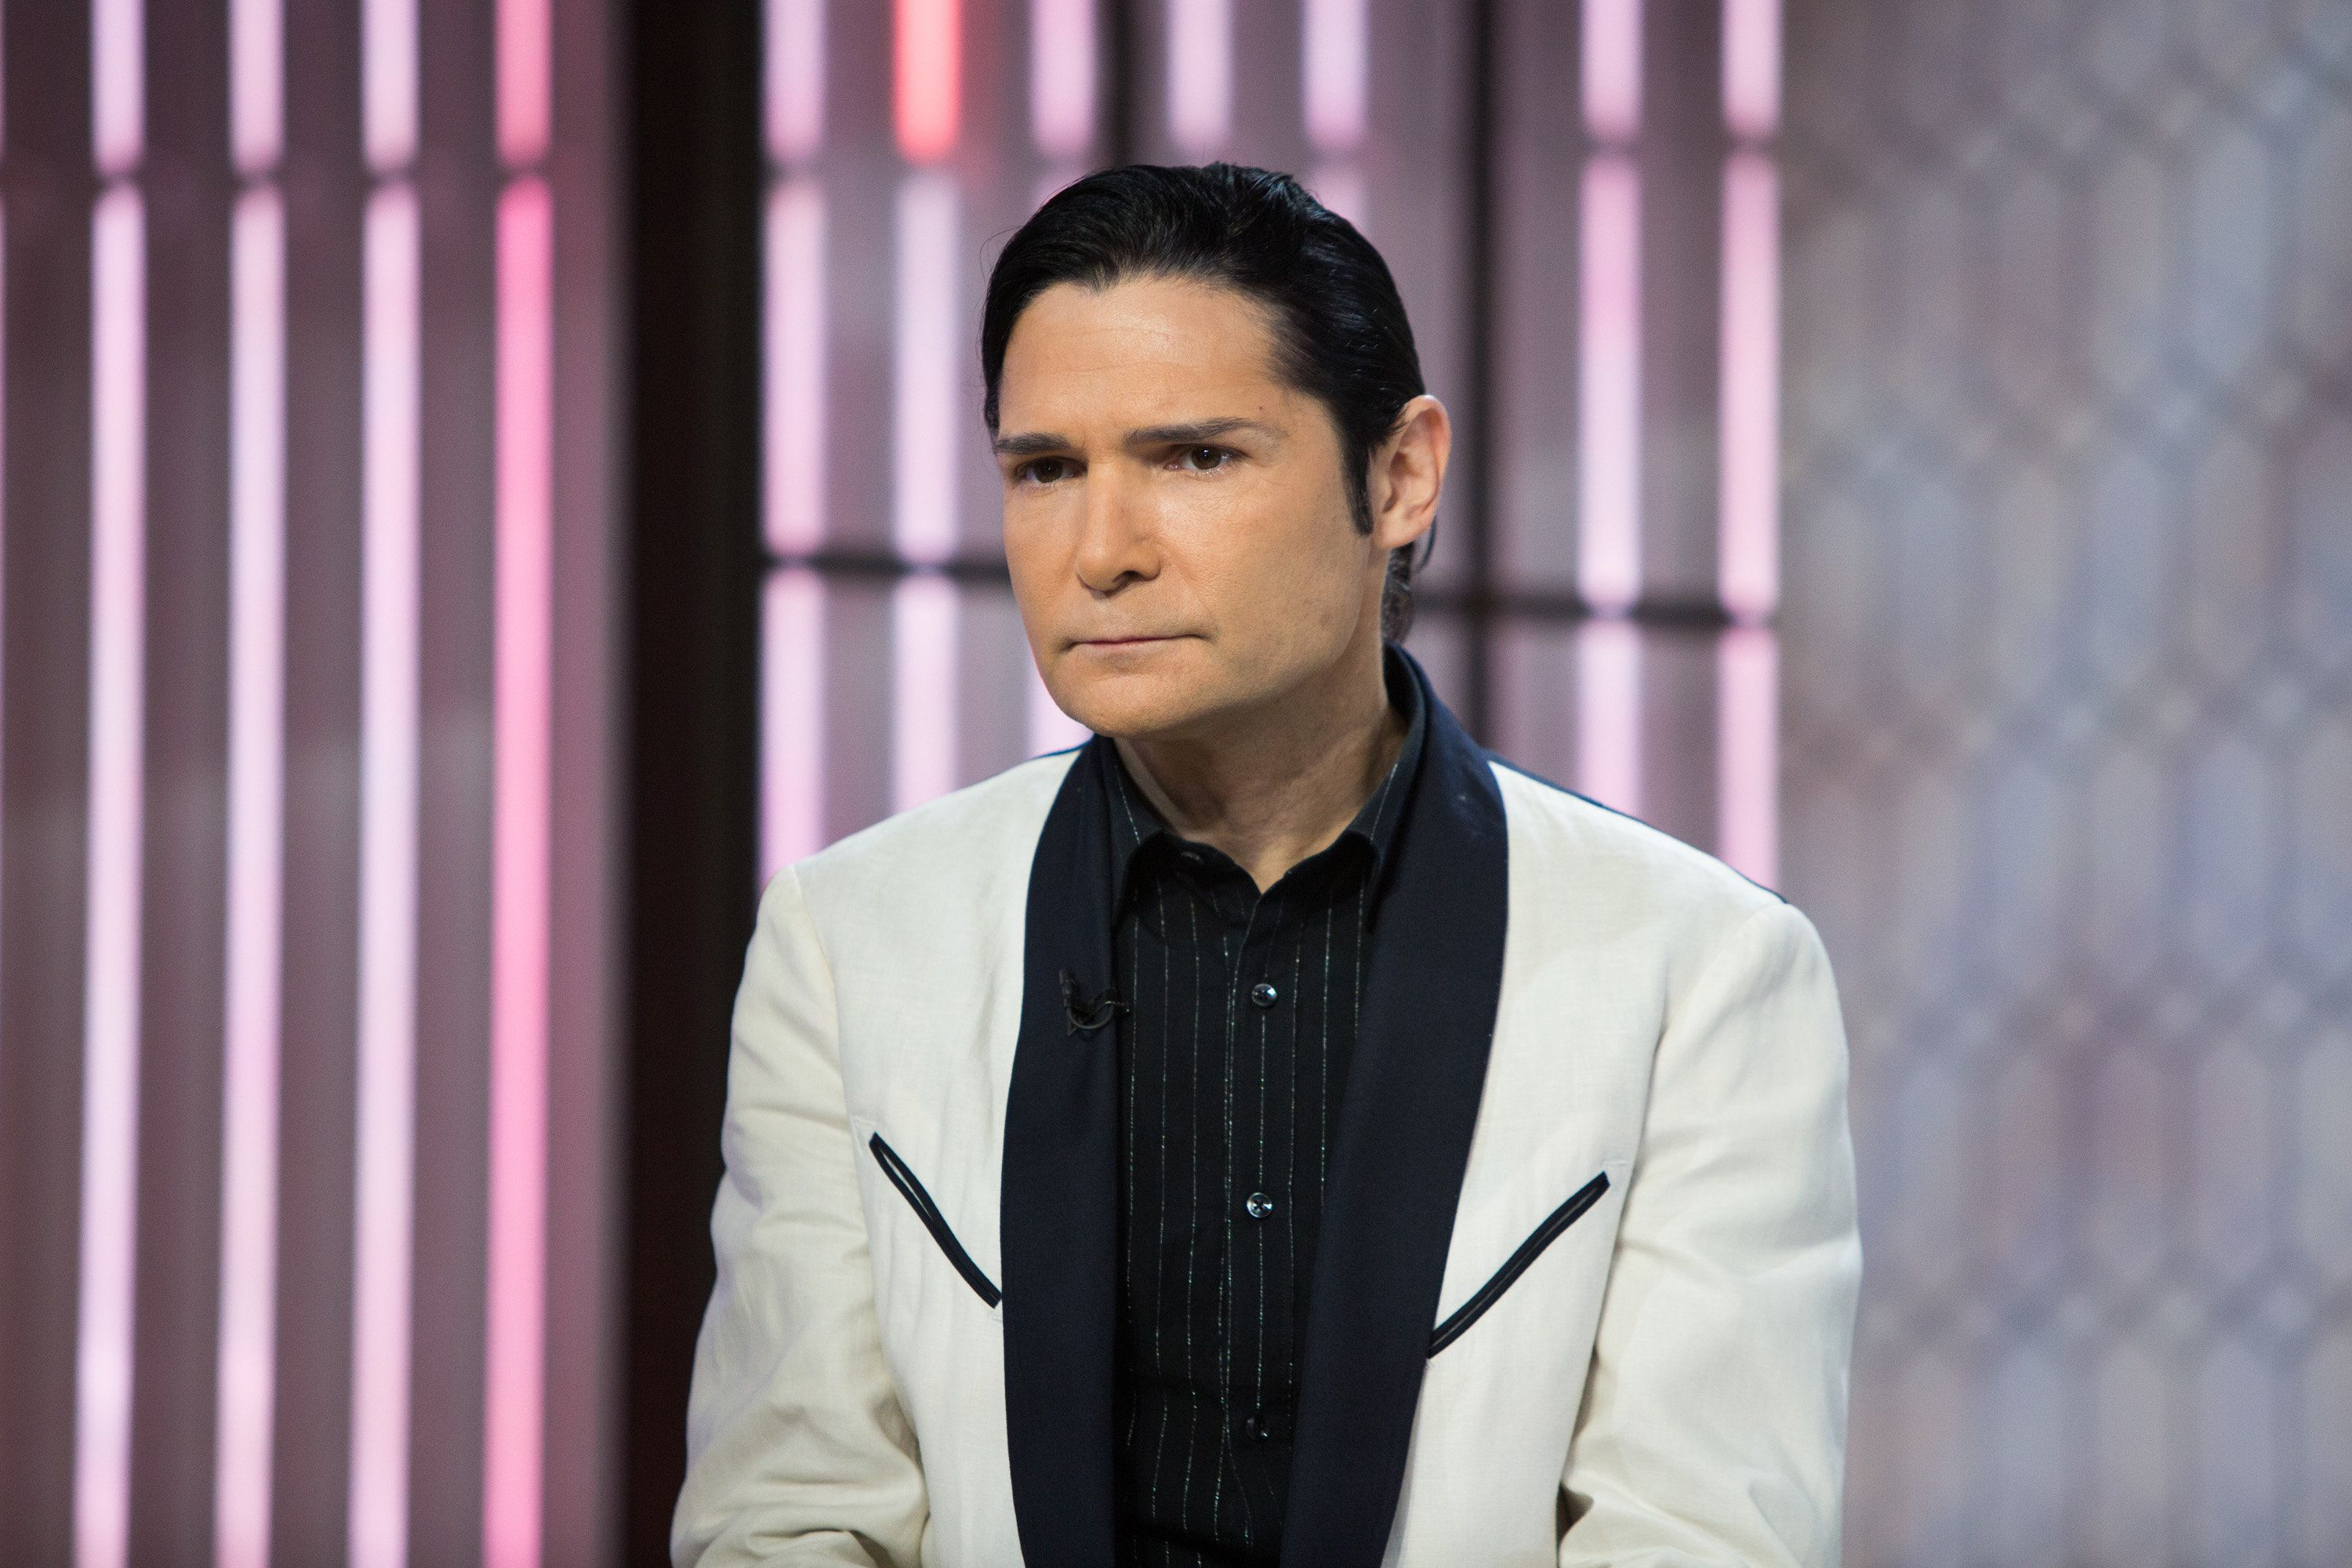 Audio found of Corey Feldman naming alleged Hollywood paedophiles in 1993